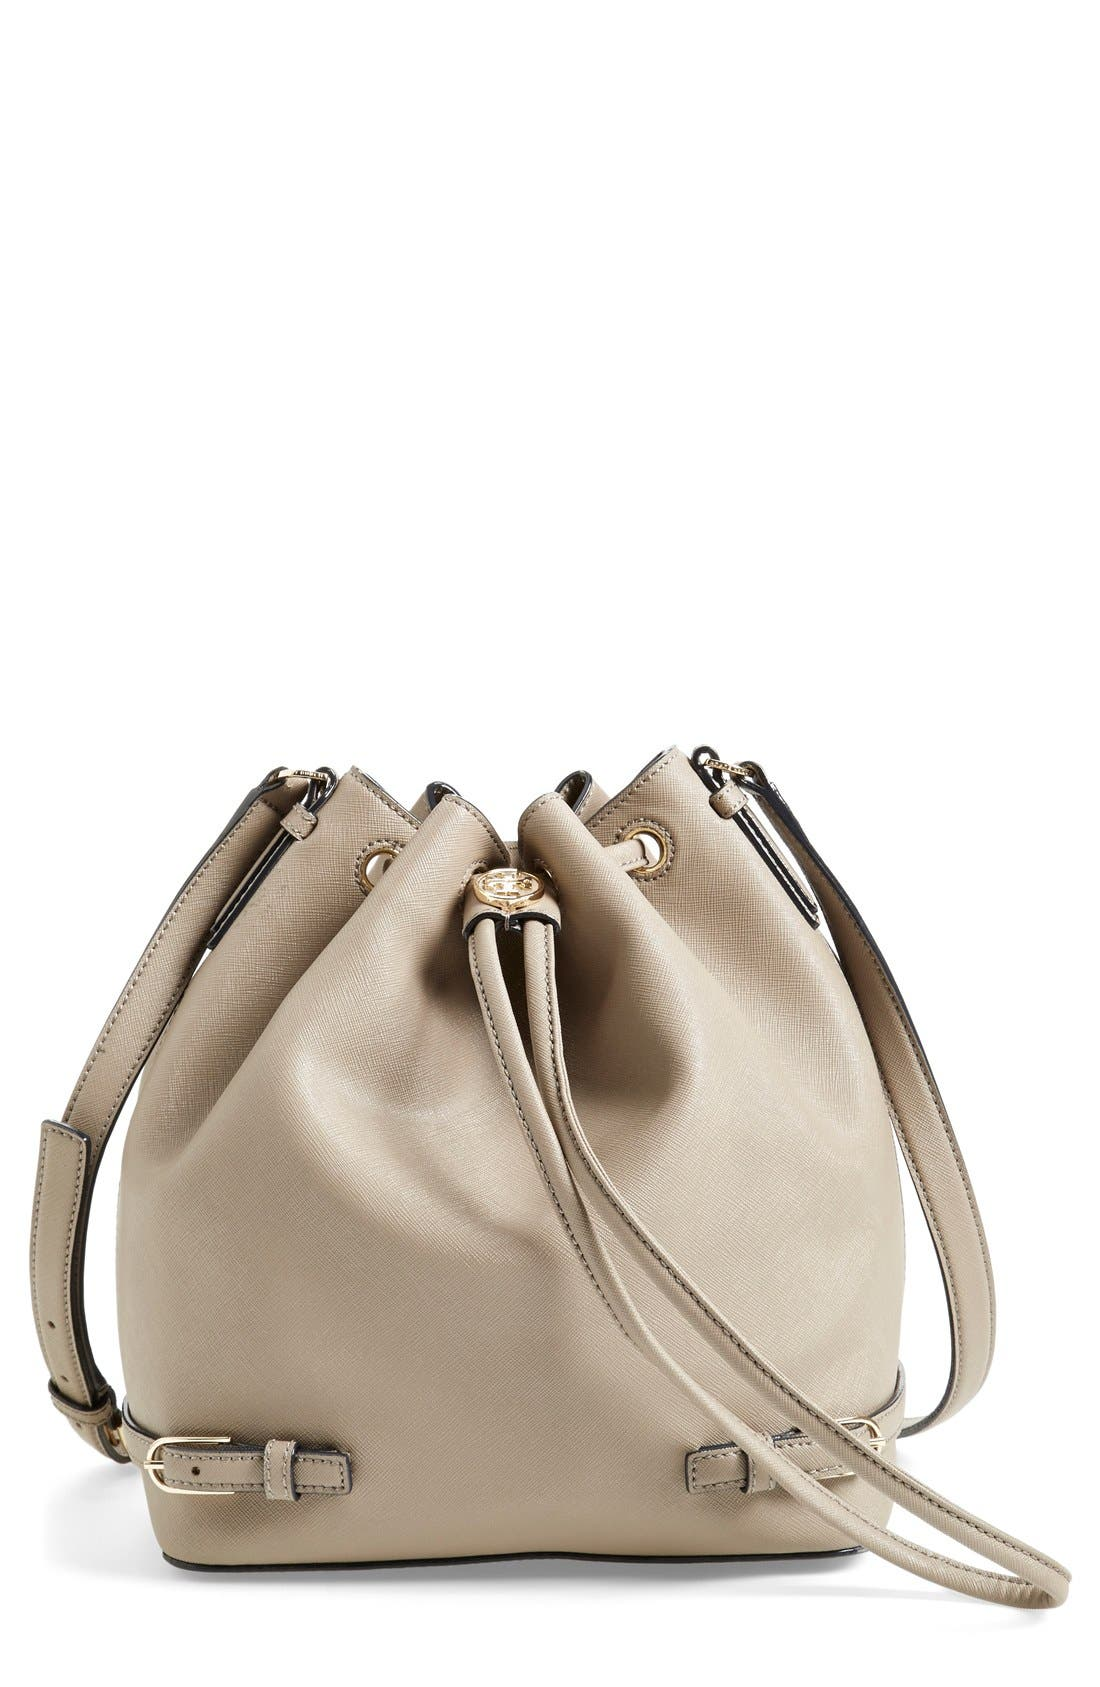 Main Image - Tory Burch 'Robinson' Saffiano Leather Bucket Bag